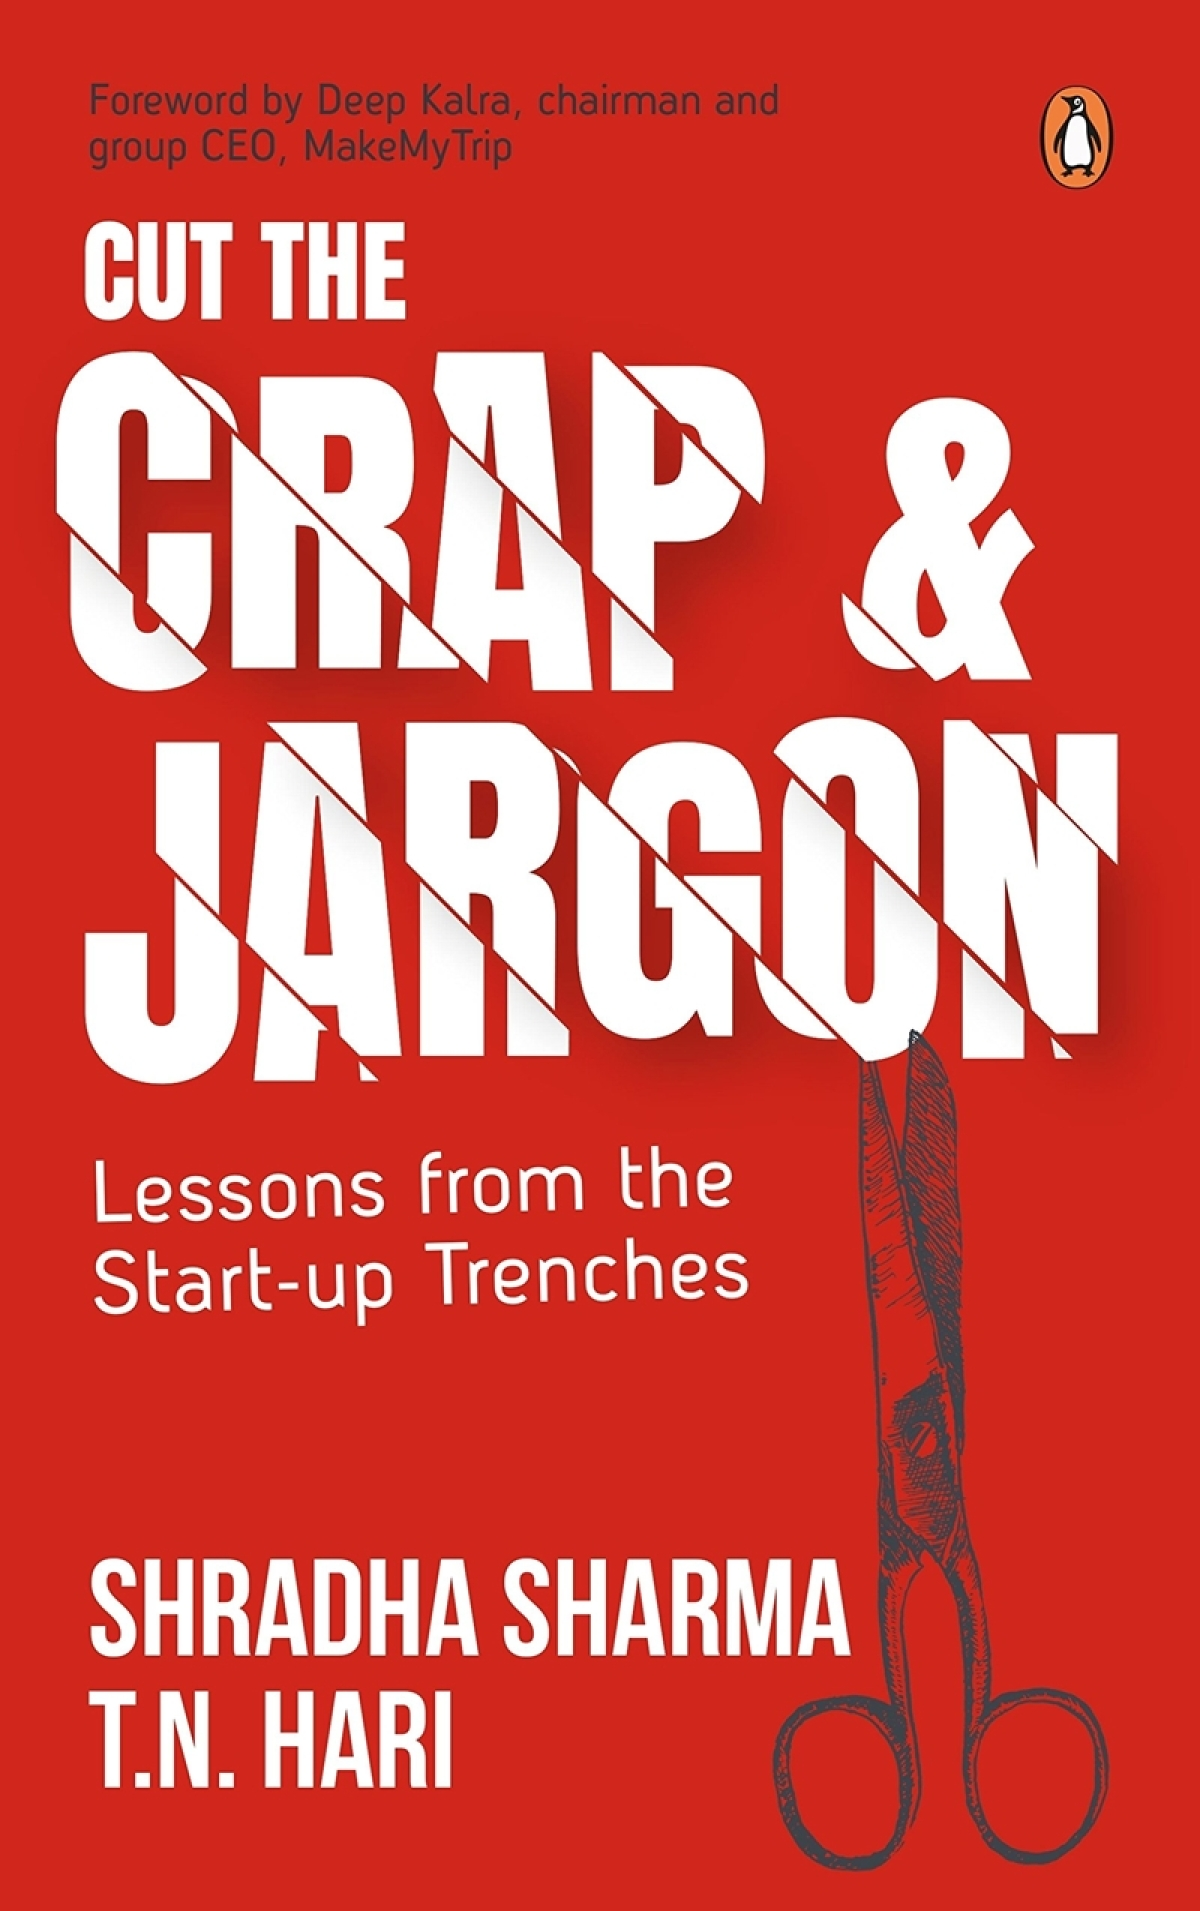 Cut the Crap and Jargon: Lessons from the Start-up Trenches by Shradha Sharma and and T N Hari- Review